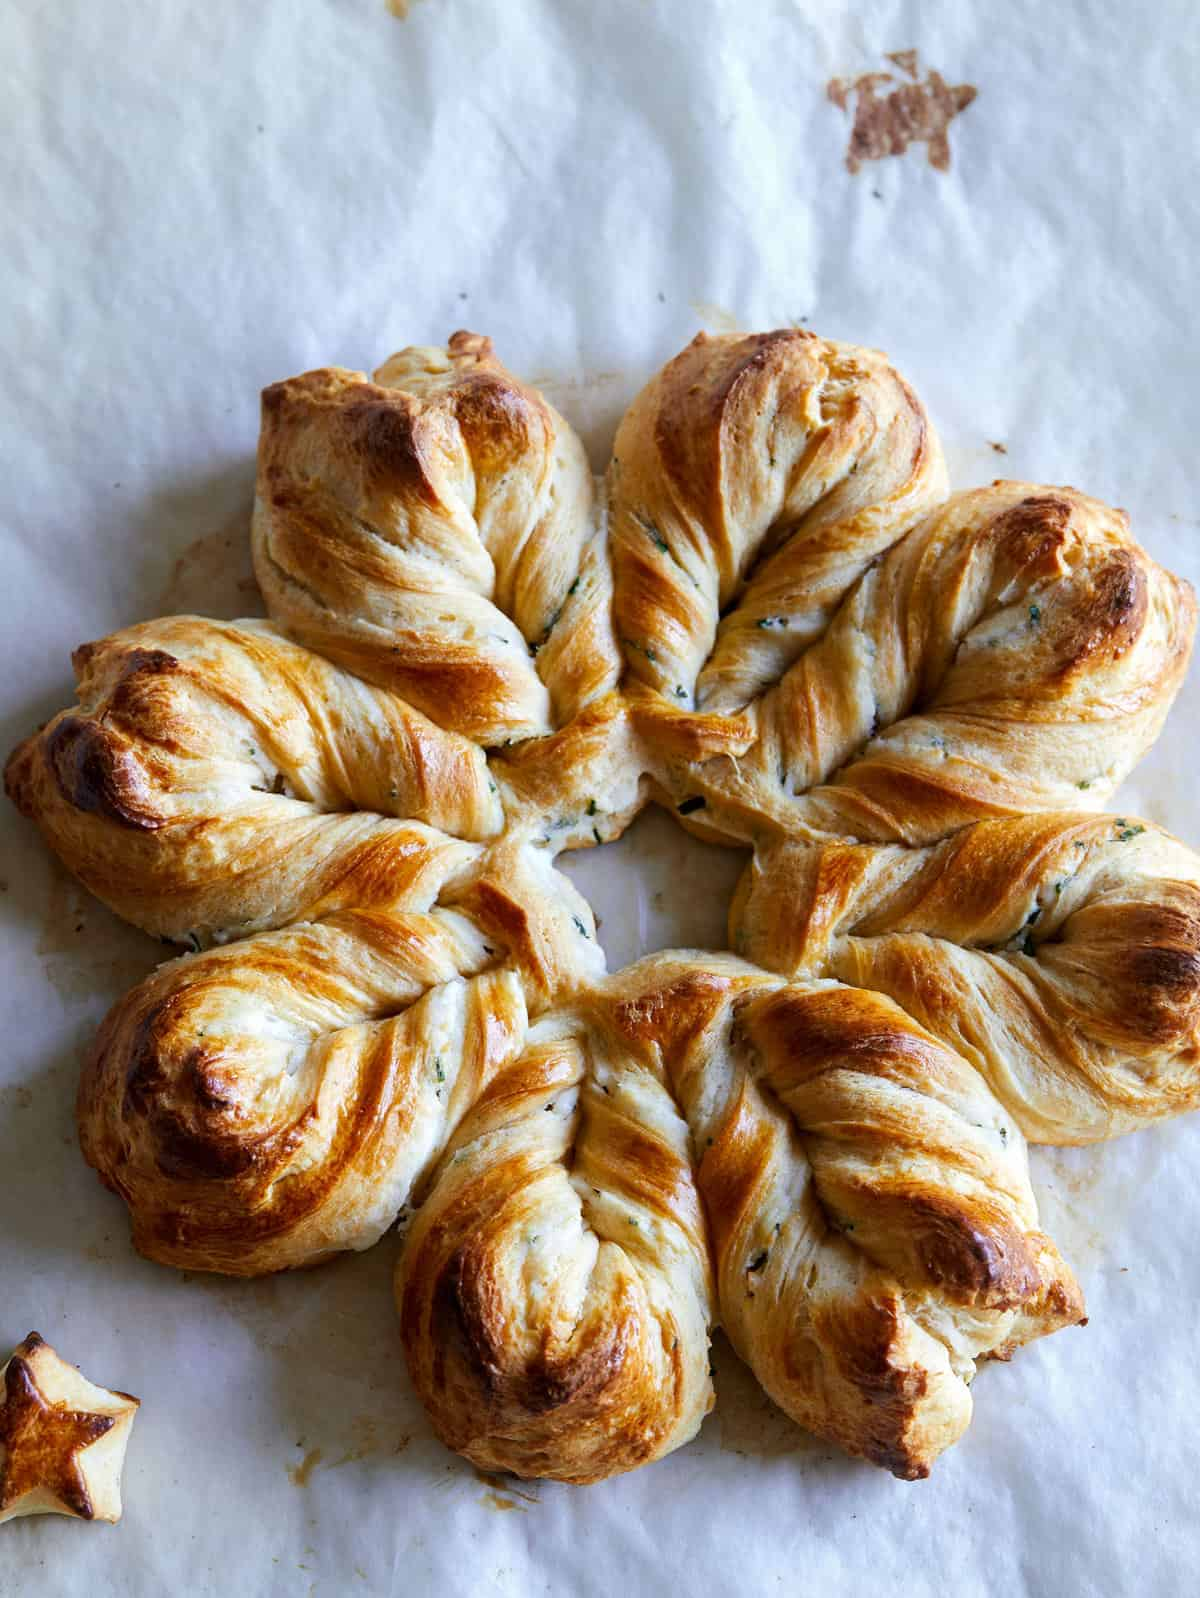 Herb and cheese braided star bread.